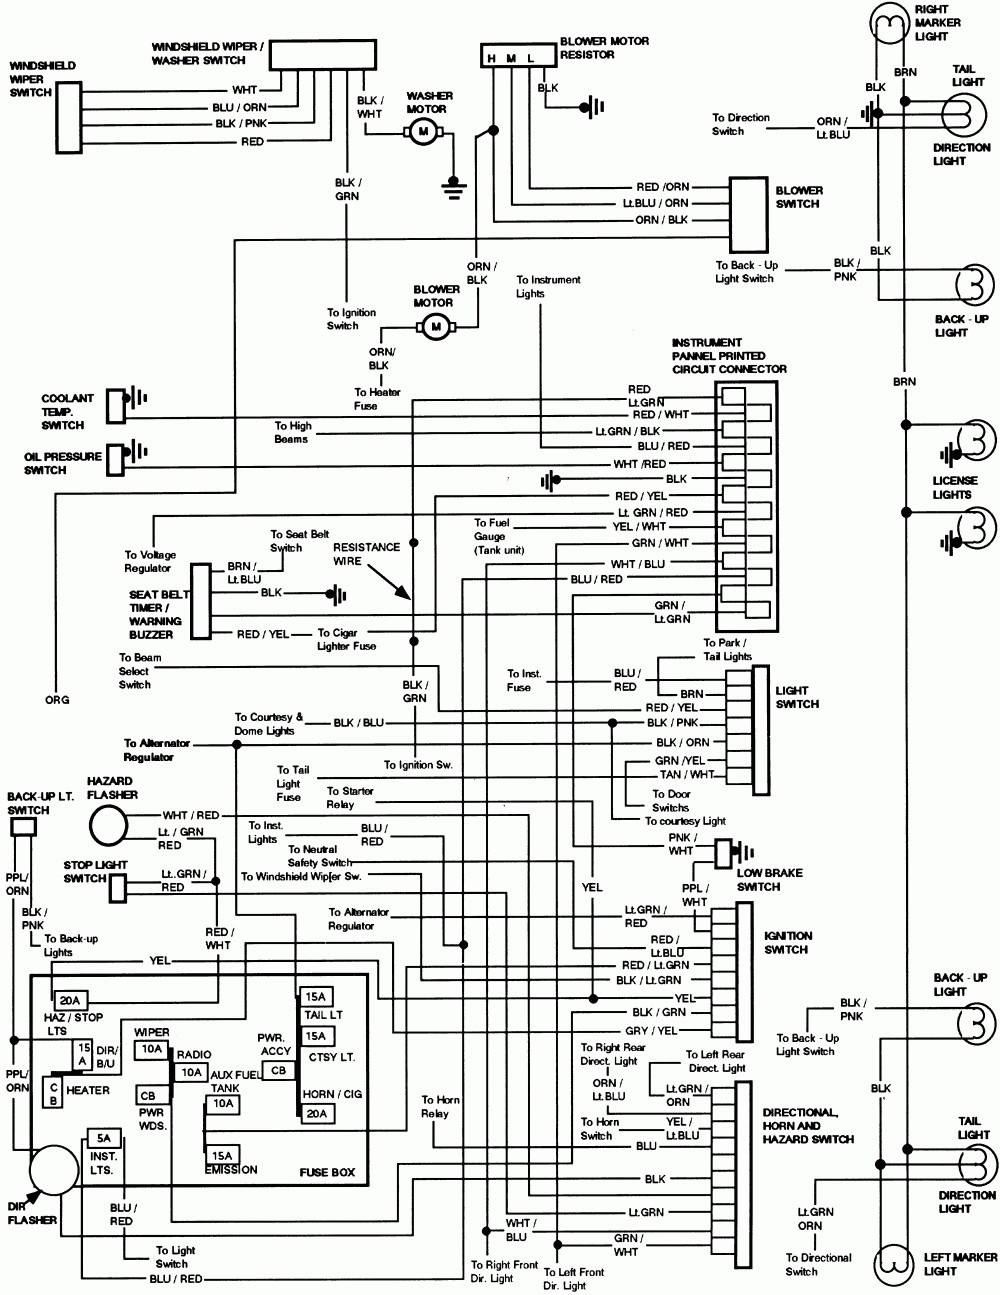 medium resolution of 1989 ford f 250 solenoid wiring diagram images gallery